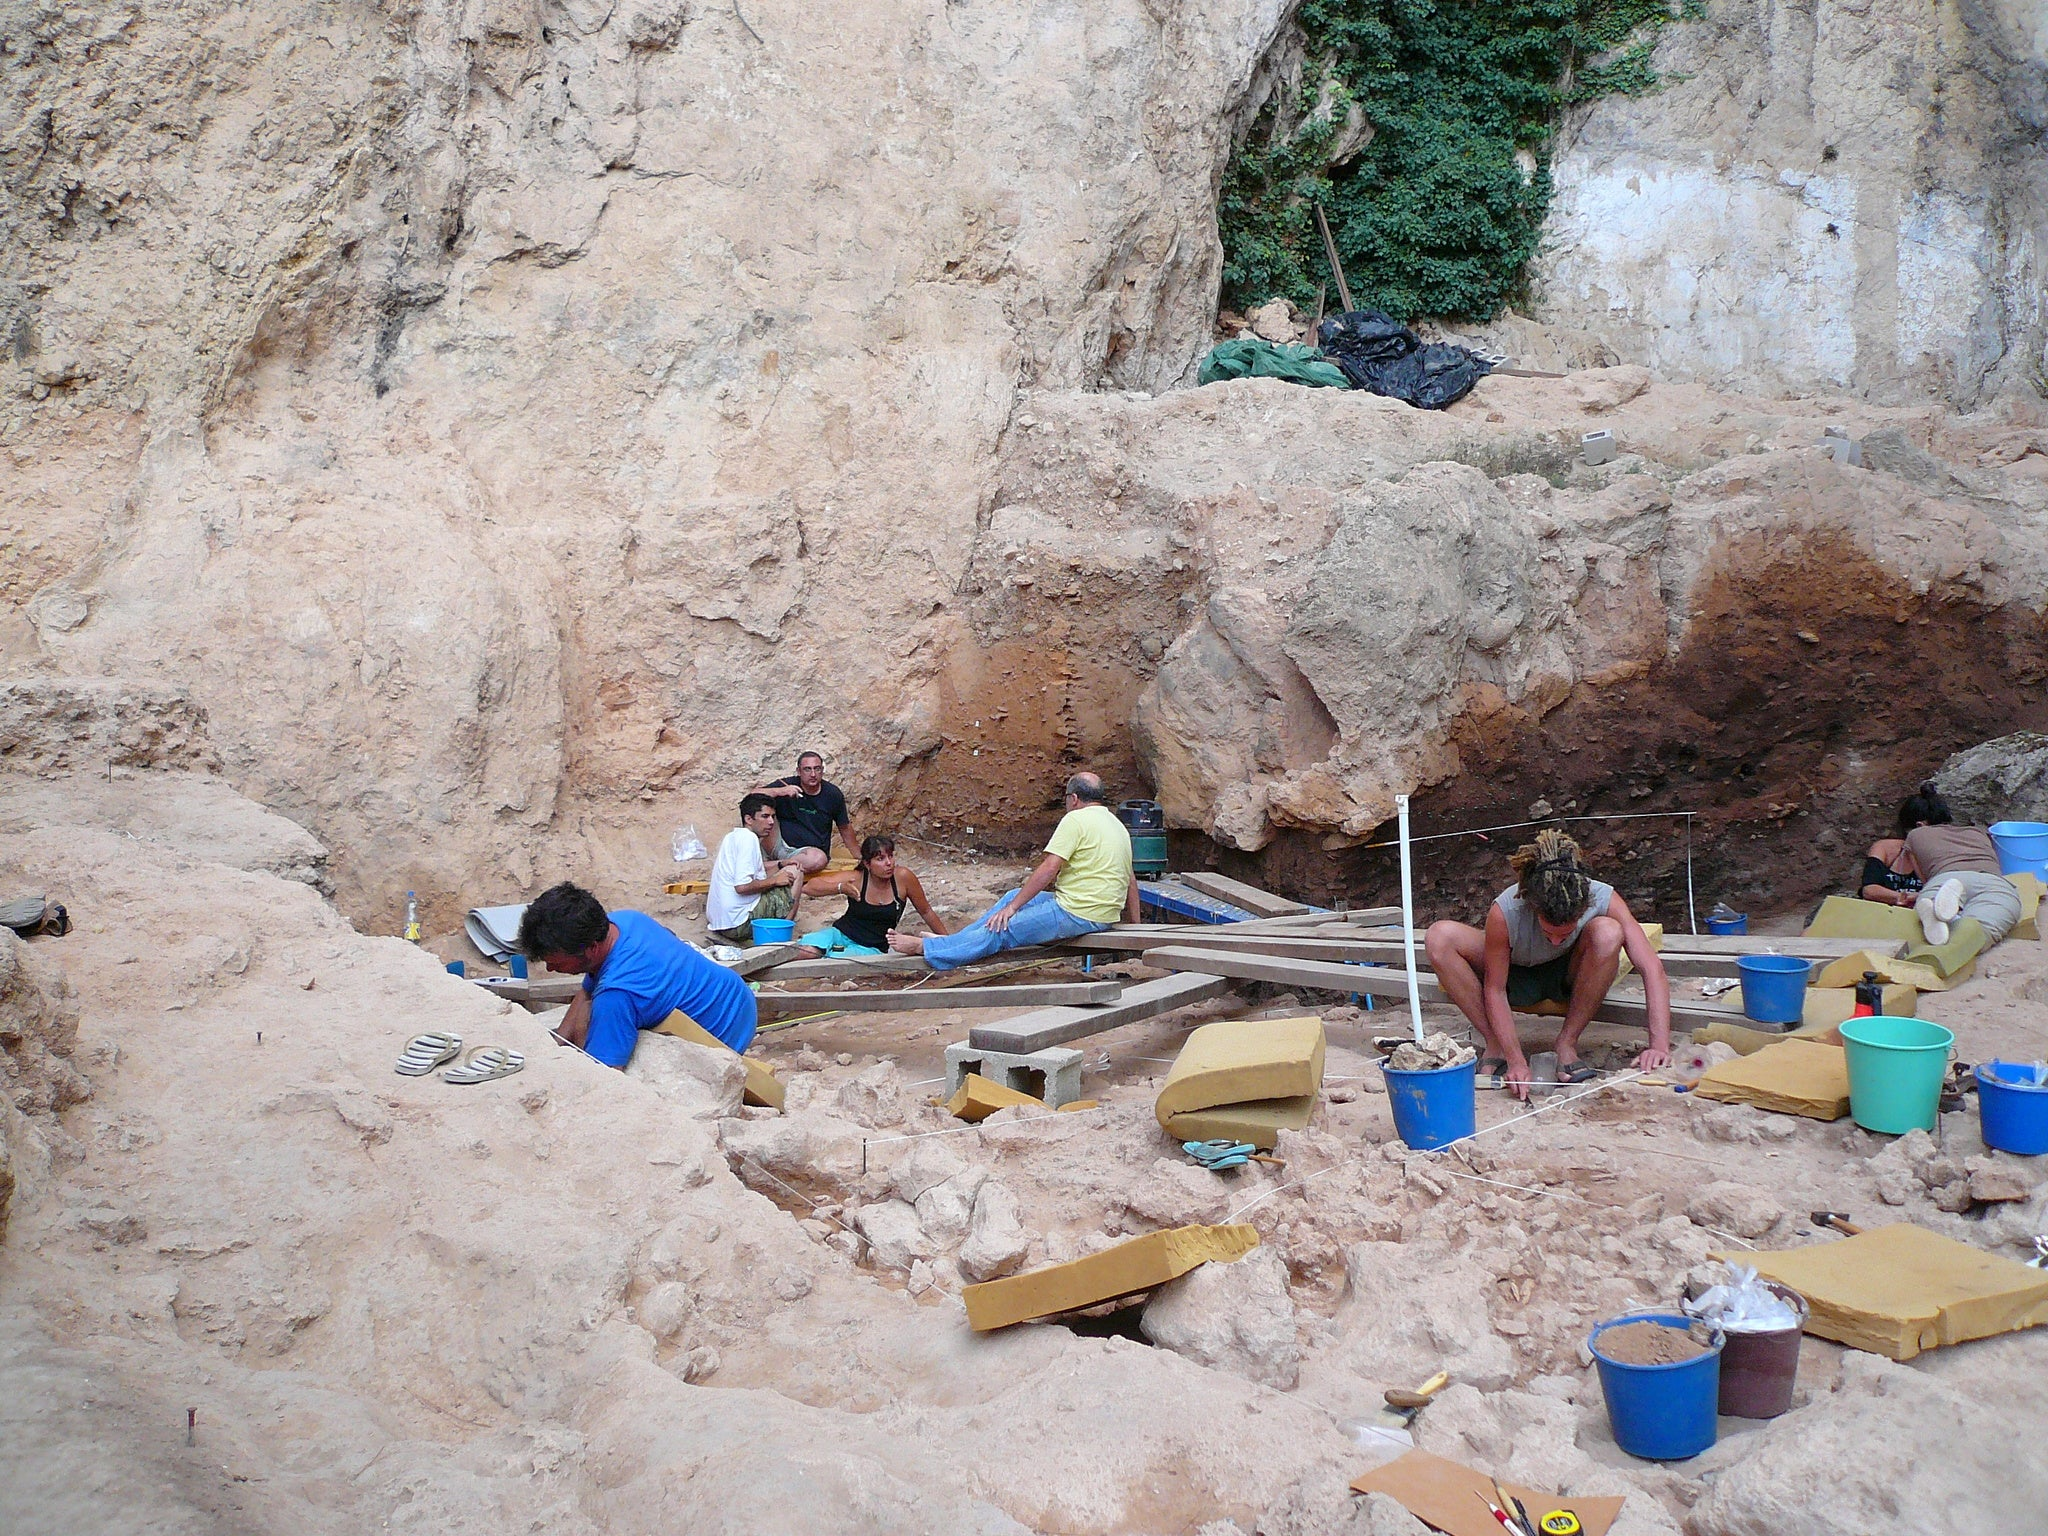 World's oldest faeces: Neanderthals ate more vegetables than previously thought, say scientists